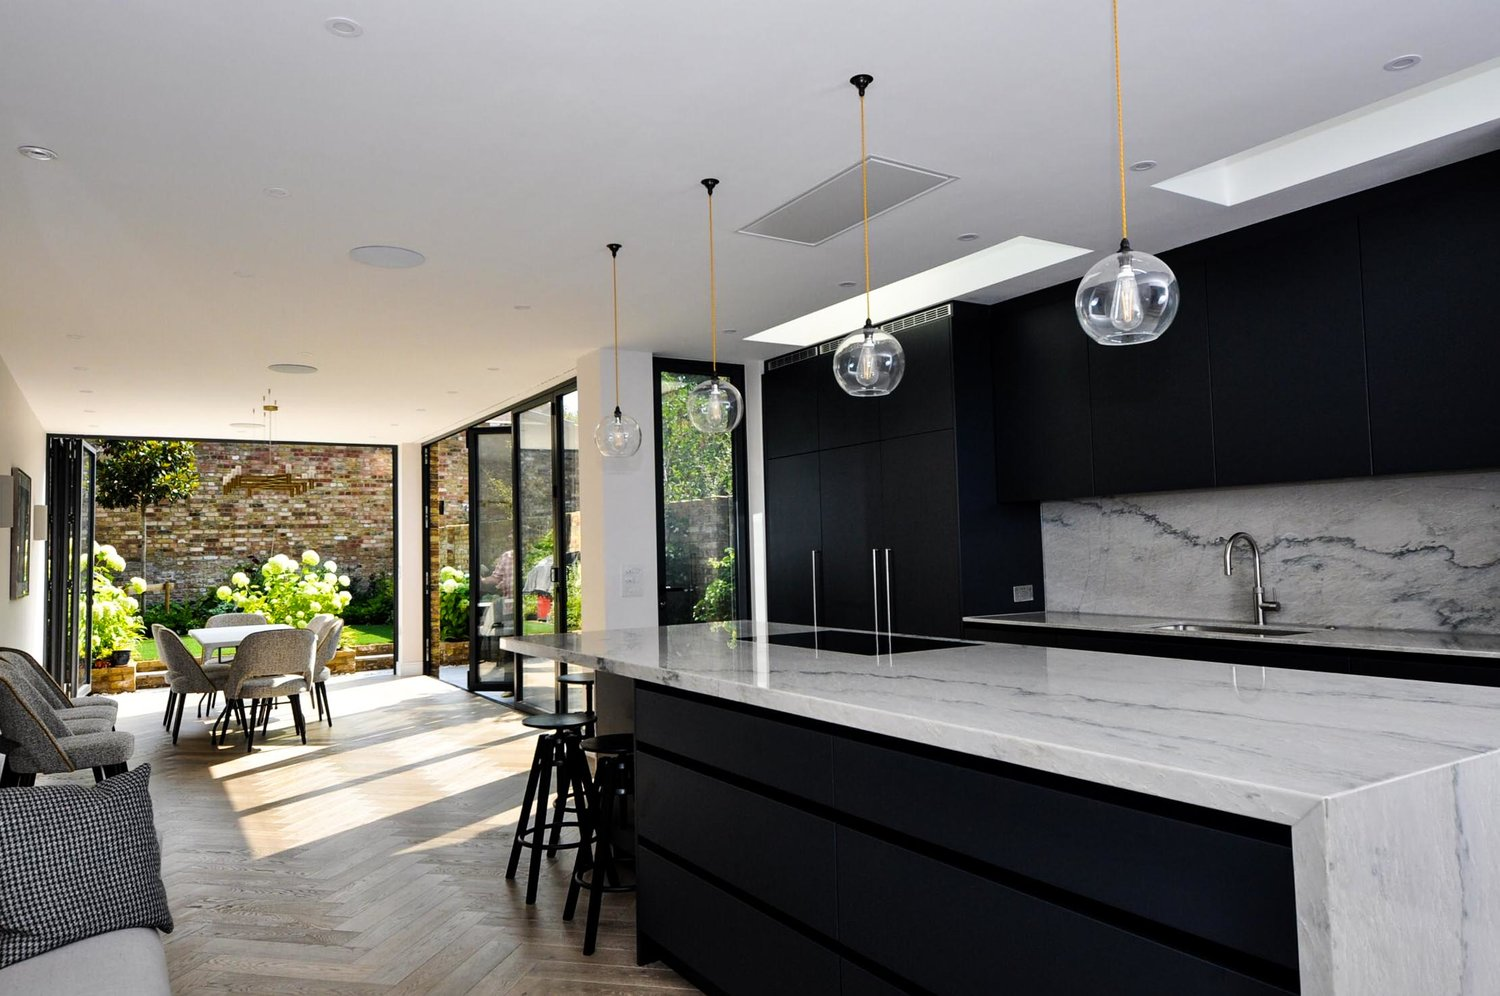 The whole overview of a beautiful kitchen and living room with marble worktops and a modern interior design for a completed Kitchen Extension in West Hampstead